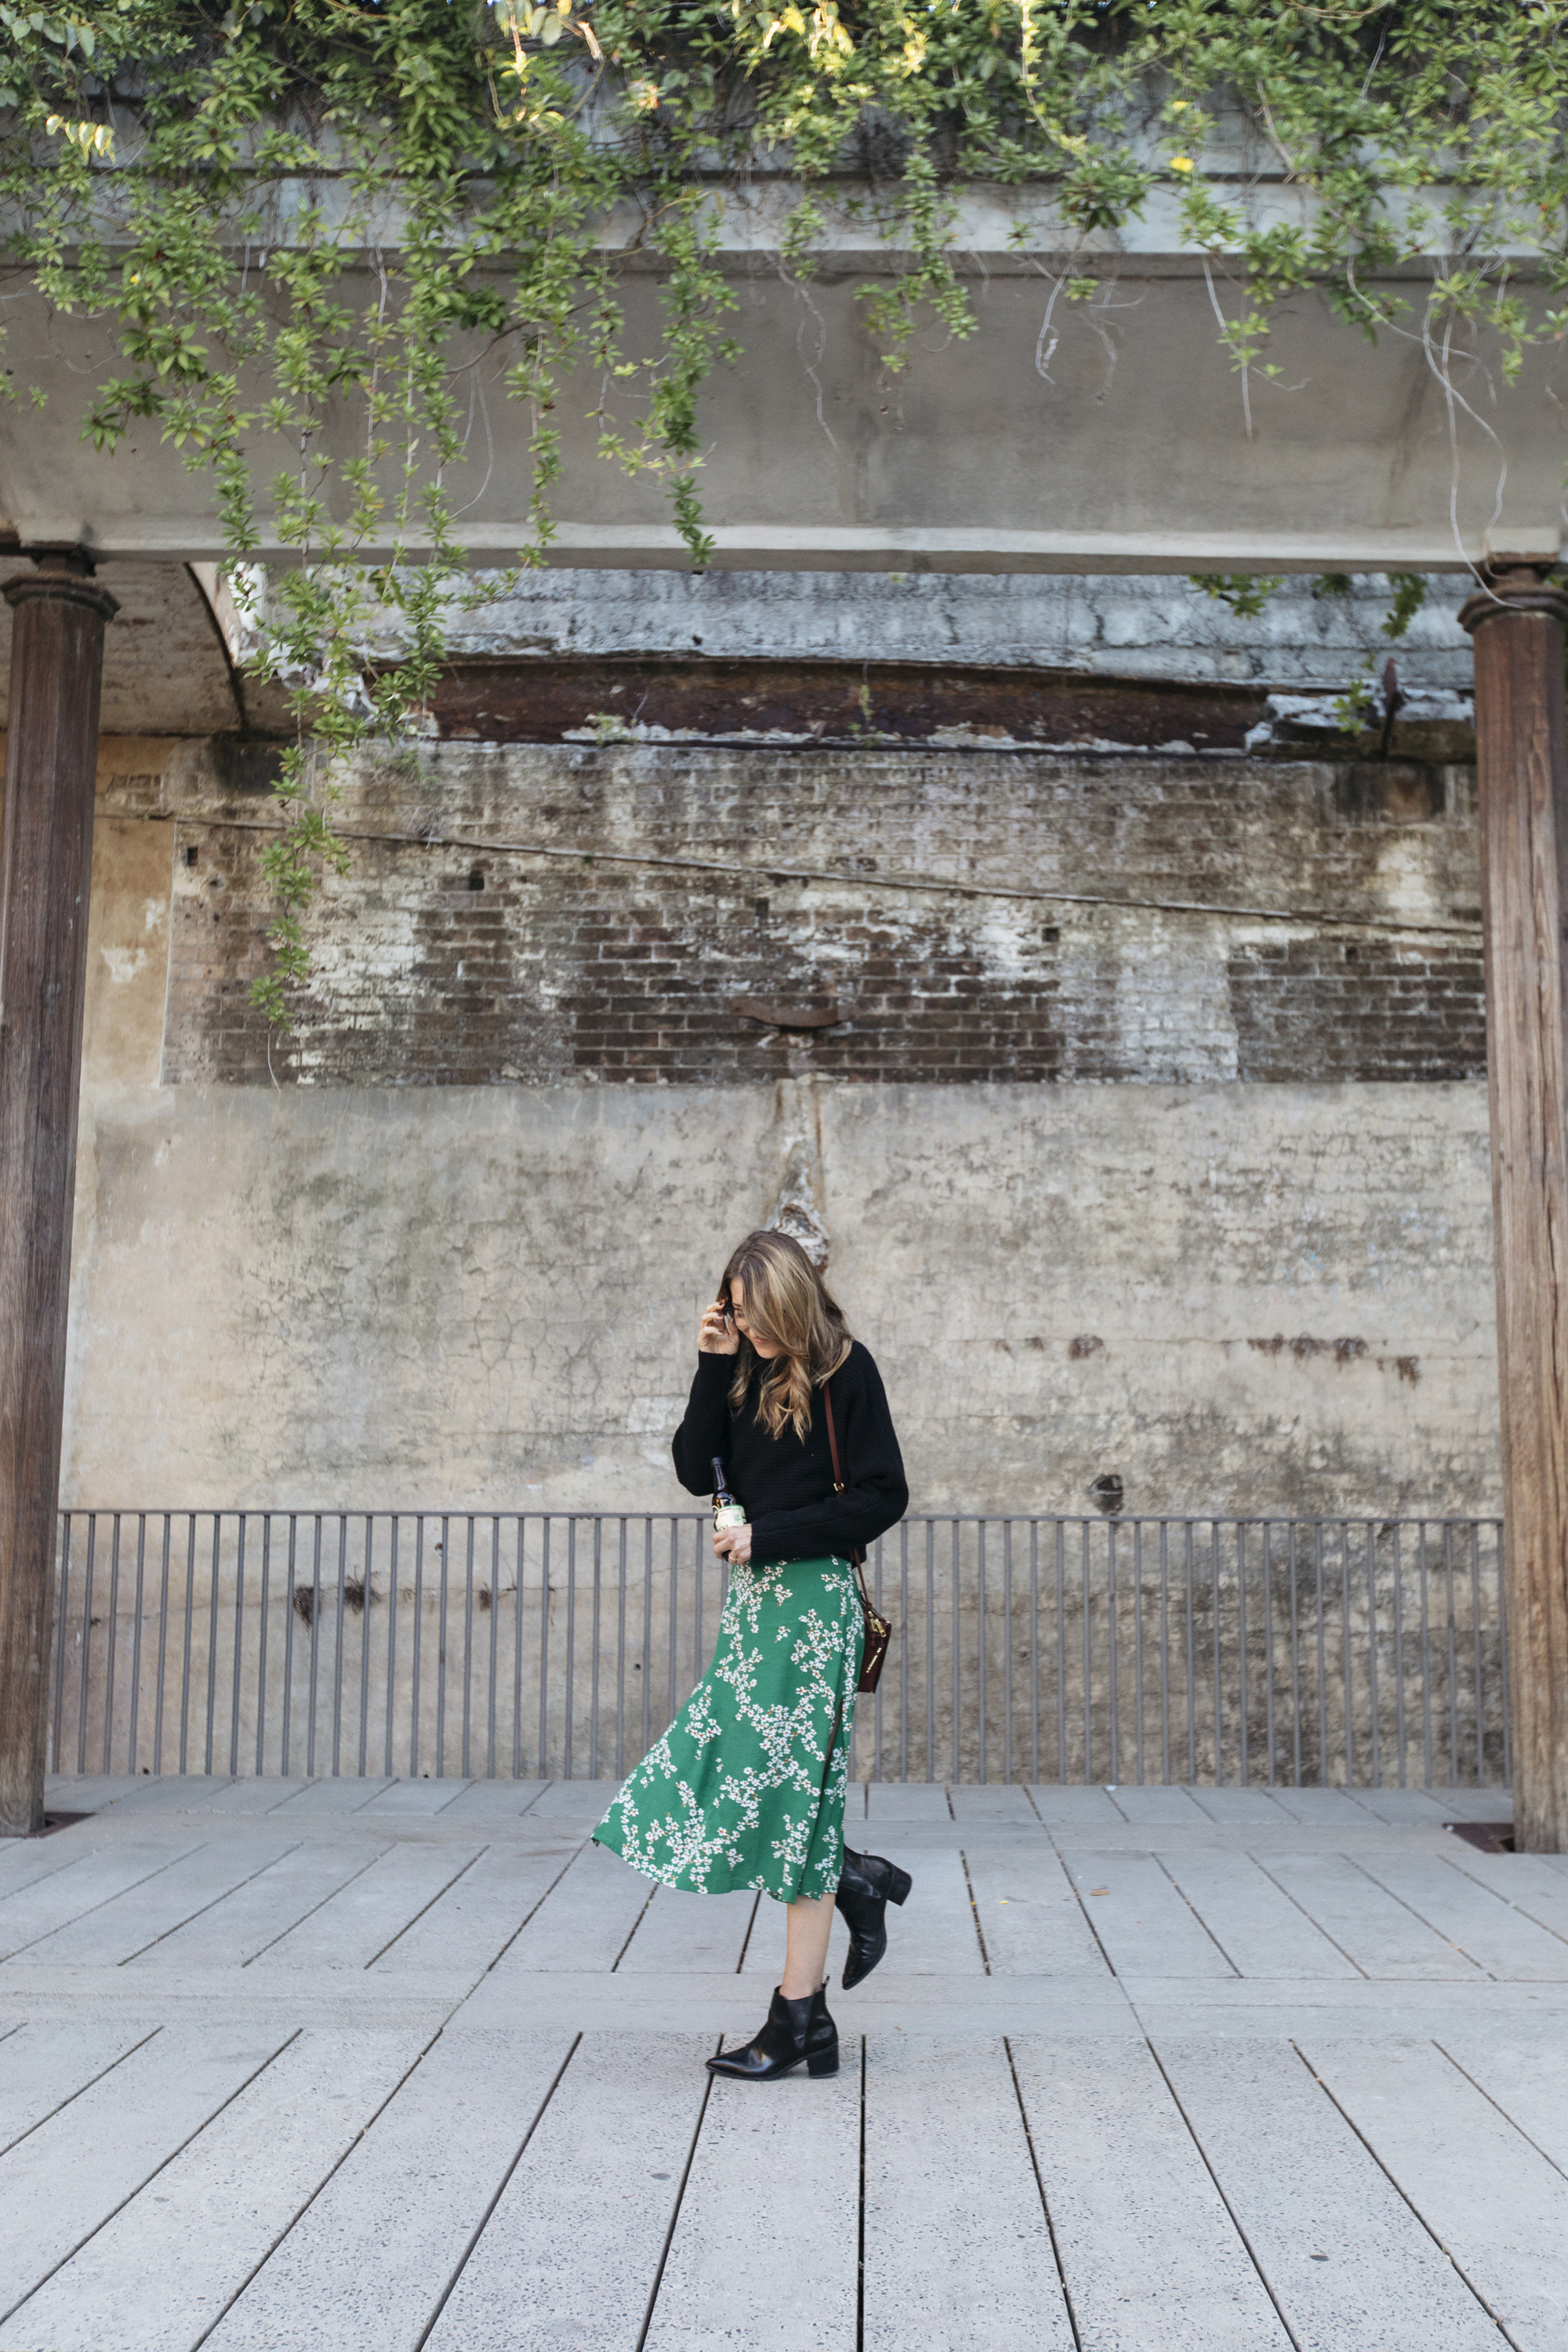 Exploring the streets of Australia in a fashionable green maxi skirt